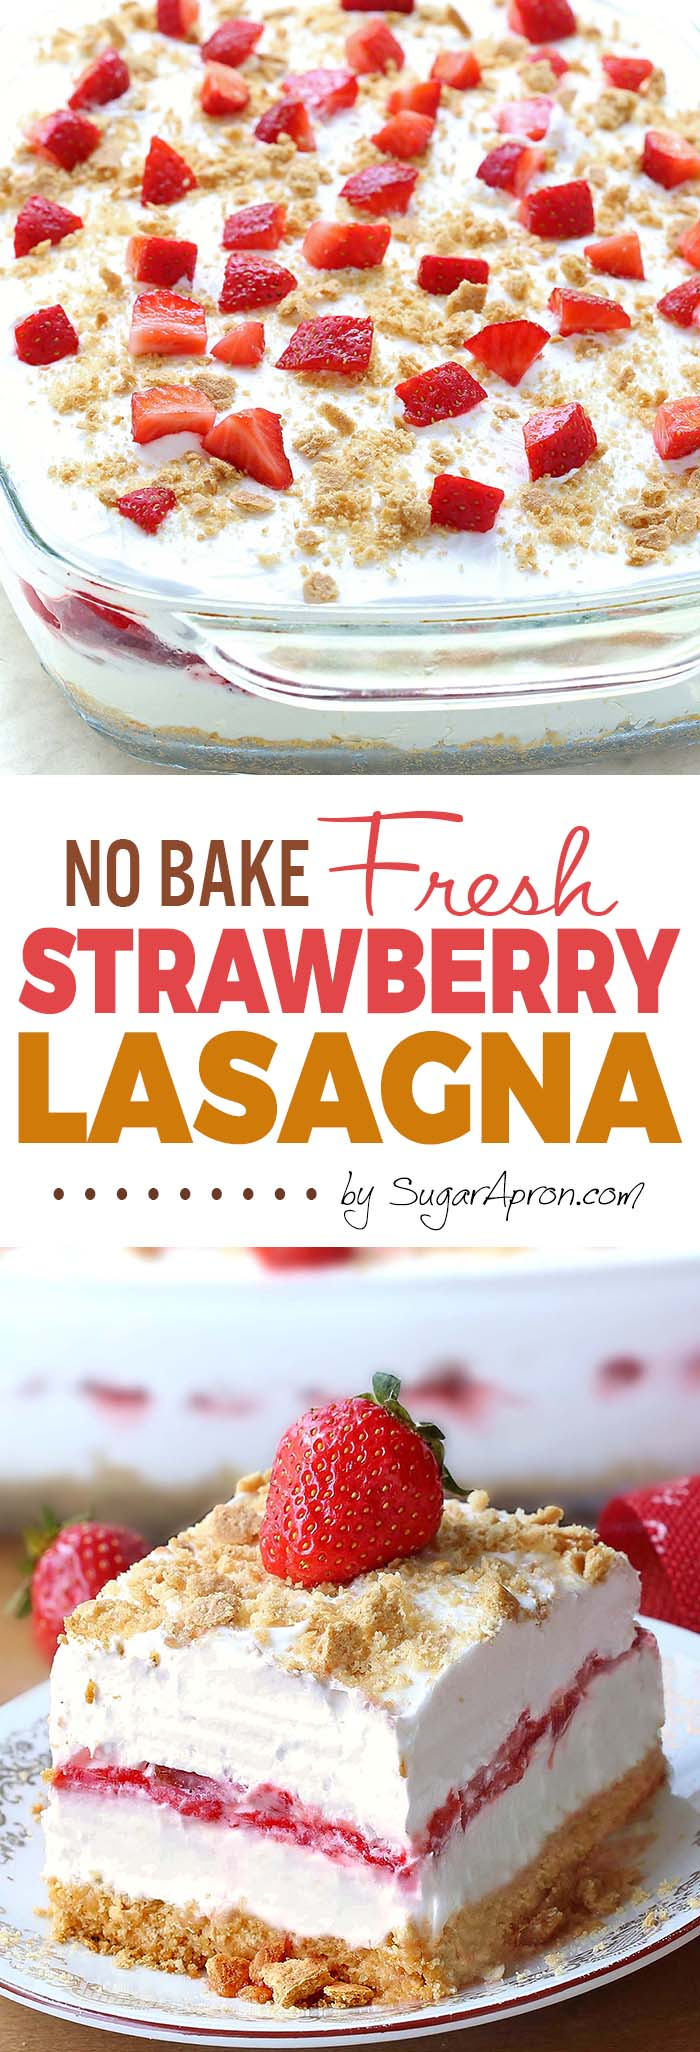 No Bake Strawberry Cheesecake Lasagna will make all Your Strawberries and Cream dreams come true. This is your ticket to becoming a backyard-barbecue legend, perfect for 4th of July or any other family get-togethers.